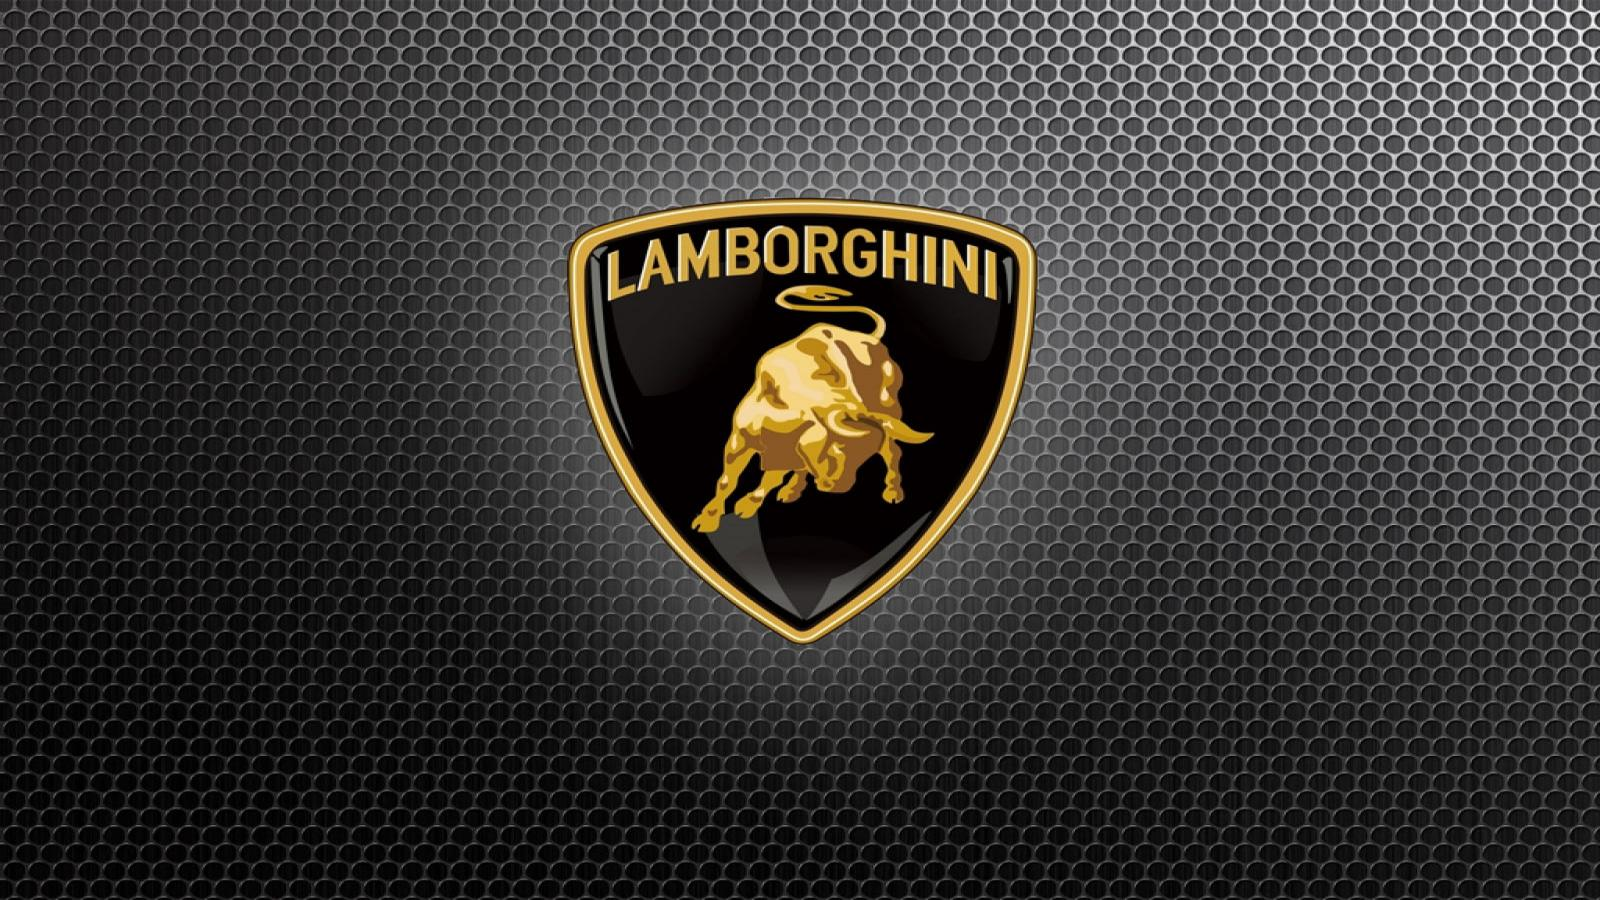 Once your download is complete, you can set lamborghini car logo wallpaper background 58905 as your background. Lamborghini Logo Wallpapers Top Free Lamborghini Logo Backgrounds Wallpaperaccess